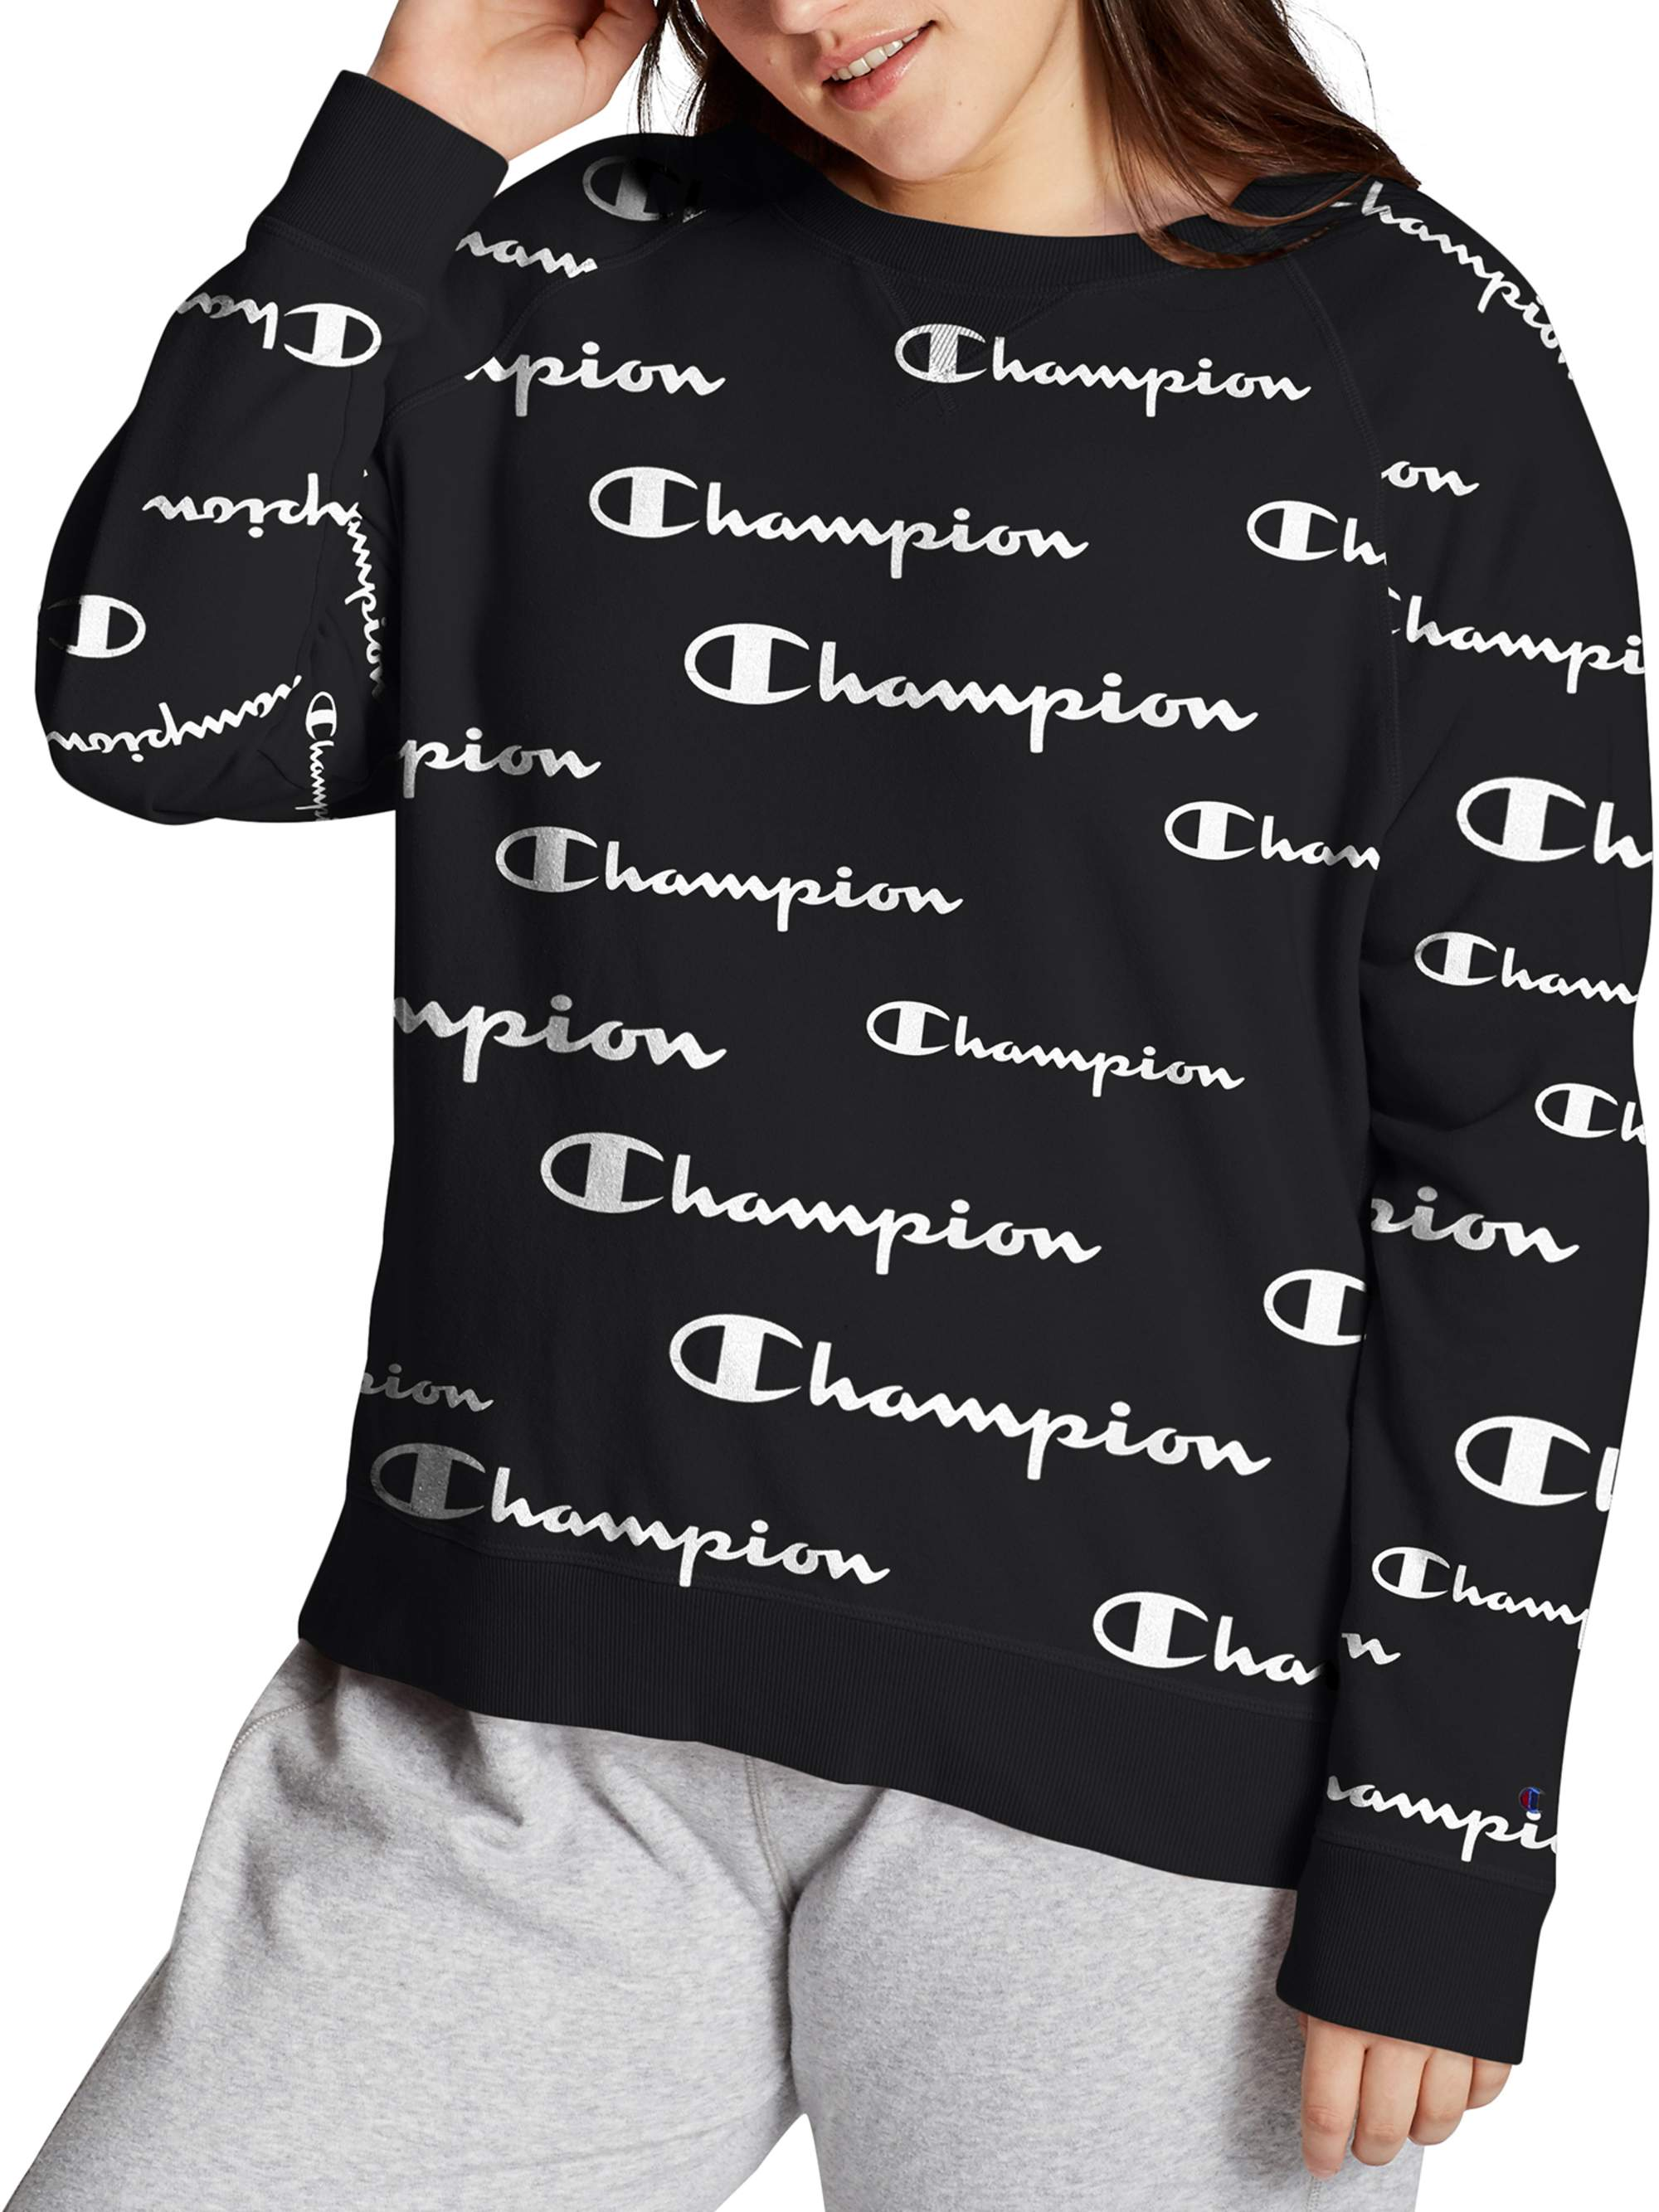 IF CHAN Cant FIX IT NO ONE CAN Hoodie Premium Shirt Black